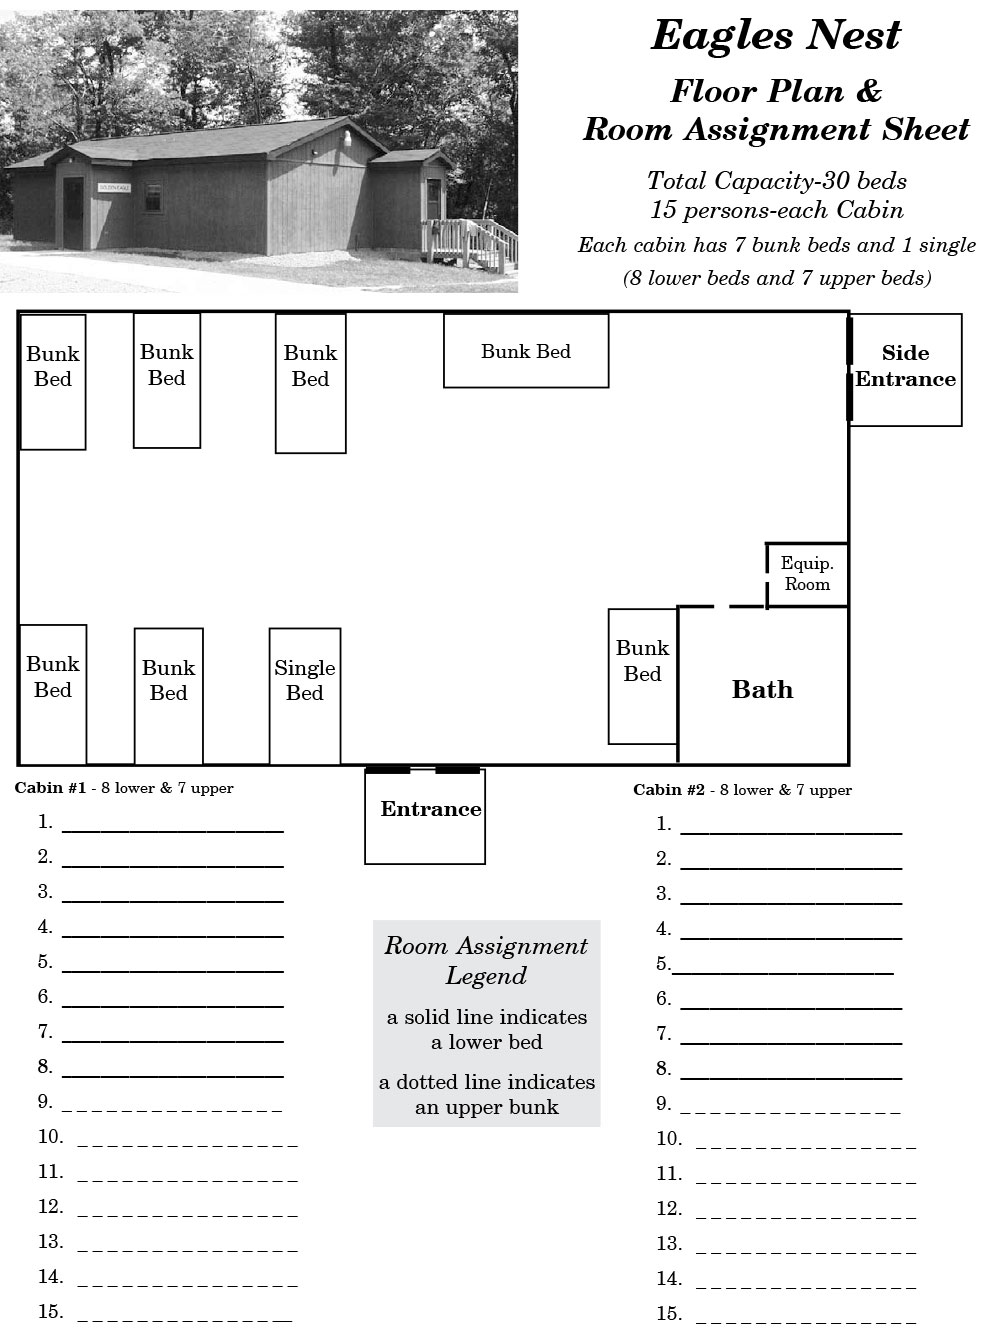 Eagle's Nest Cabin Floor Plans